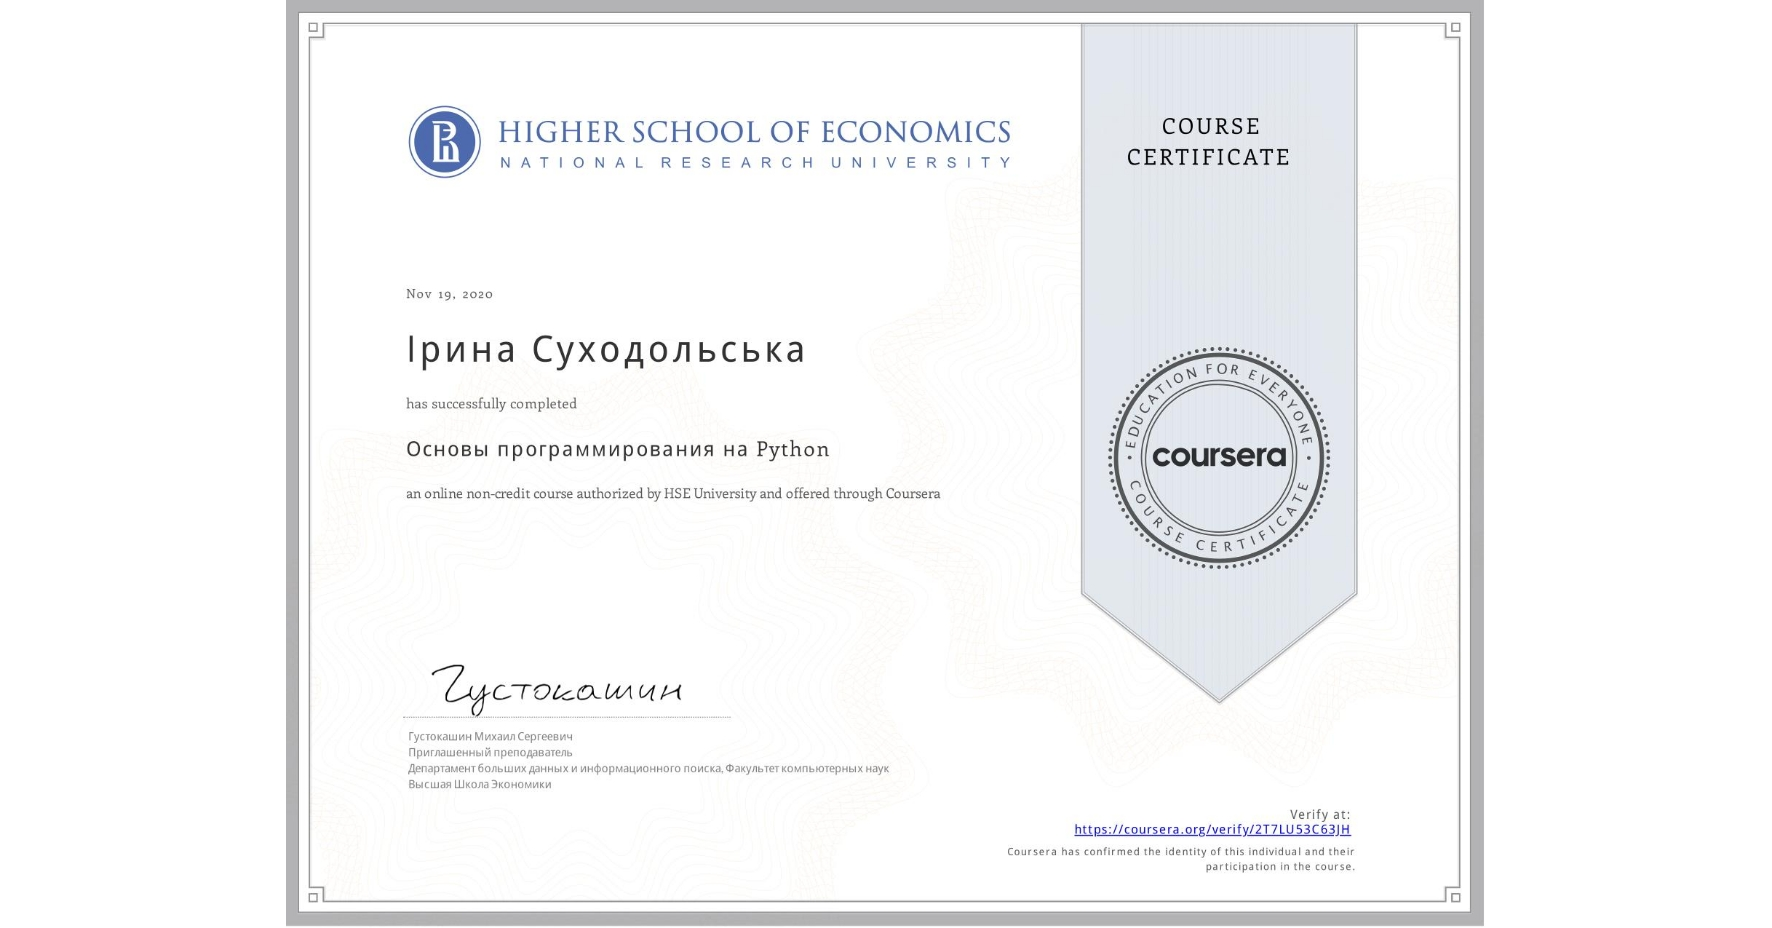 View certificate for Ірина Суходольська, Основы программирования на Python, an online non-credit course authorized by HSE University and offered through Coursera